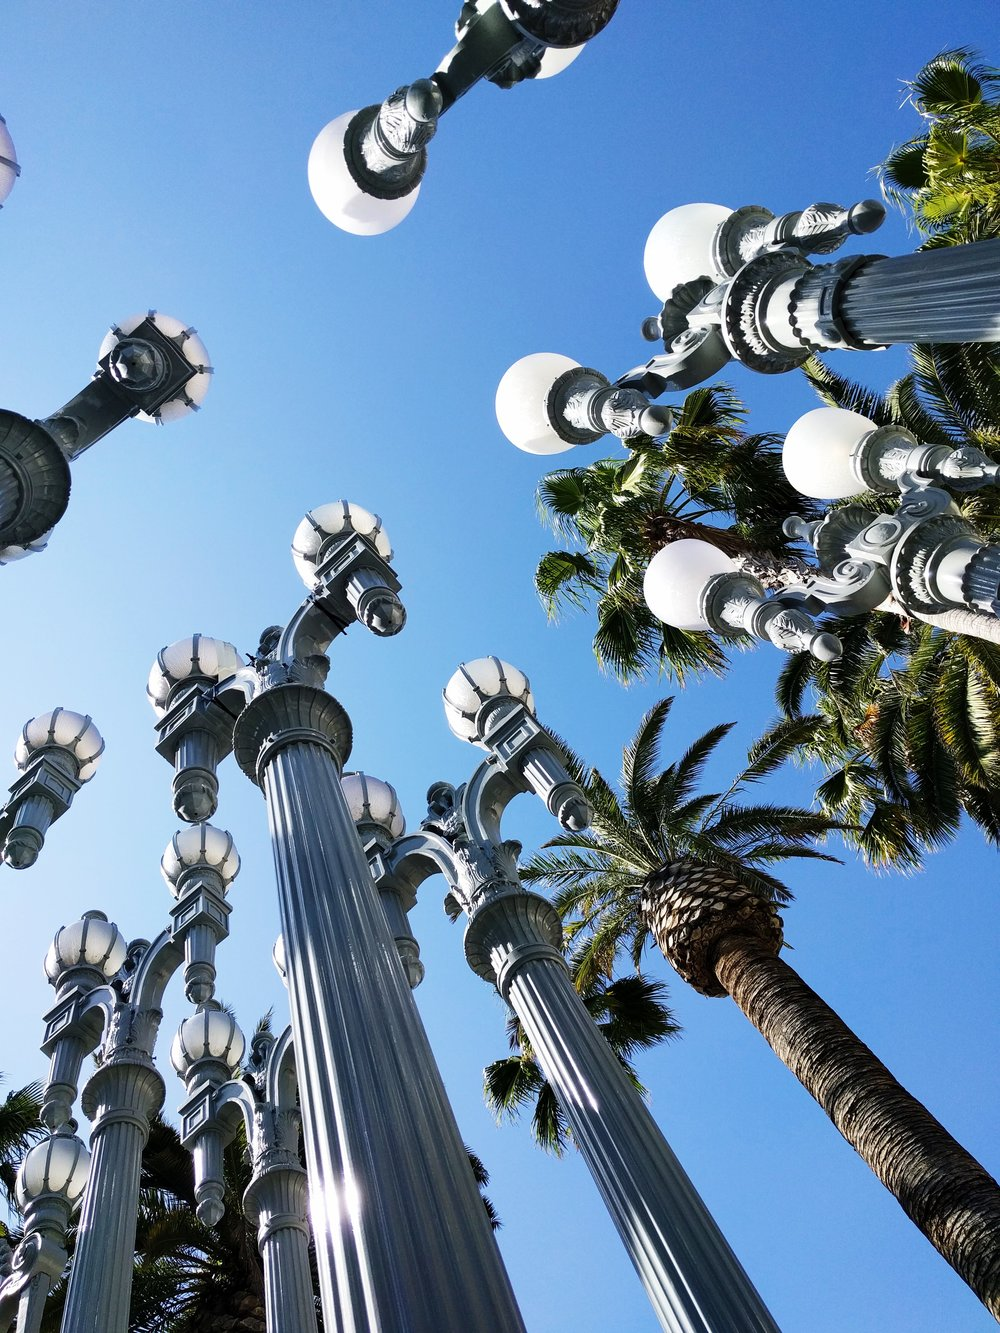 the lights! the lights! - Urban Lights by:by Chris Burden